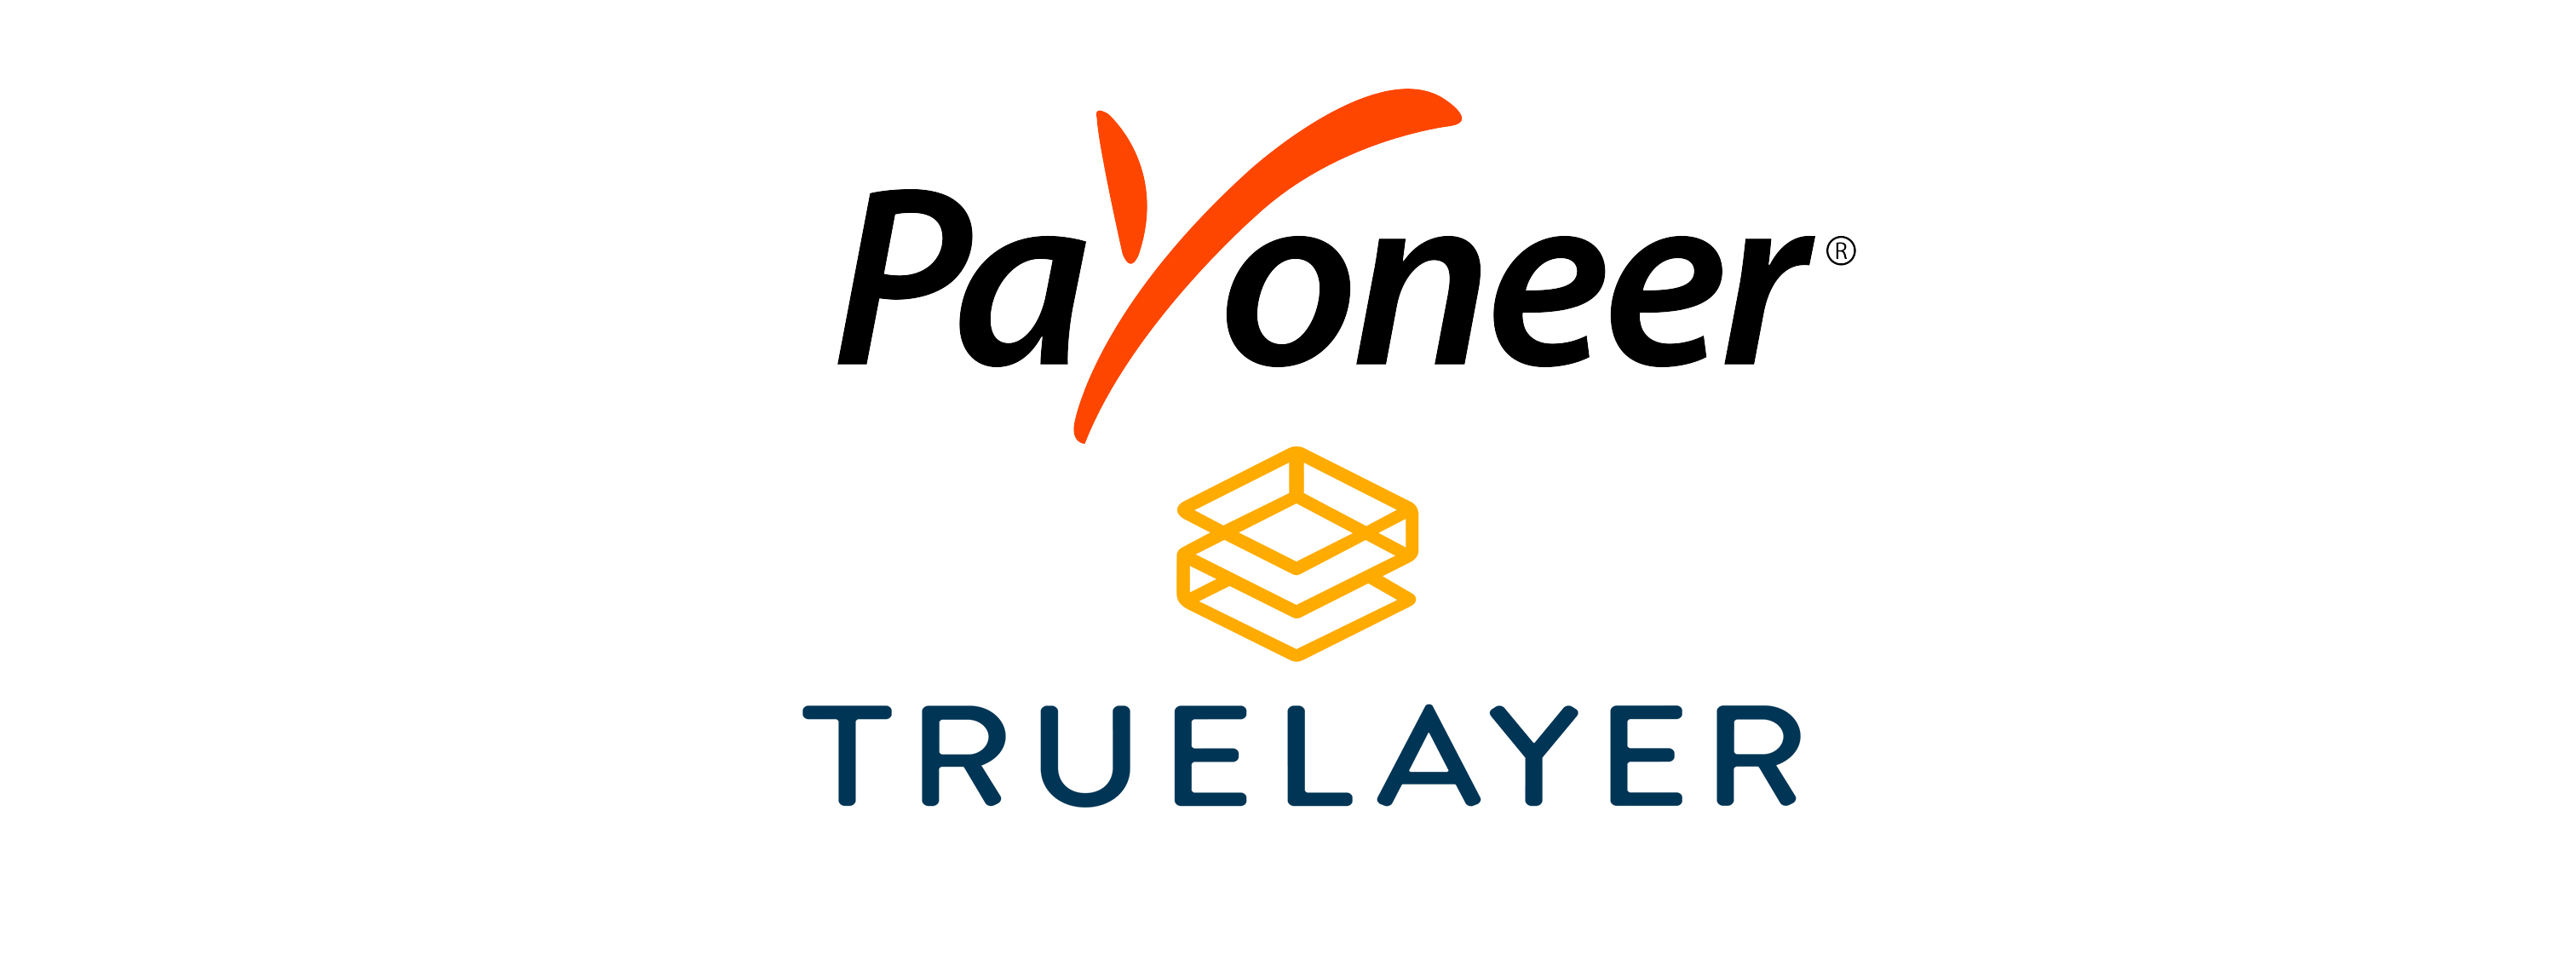 Payoneer and TrueLayer Launches Open Banking for UK, European Customers